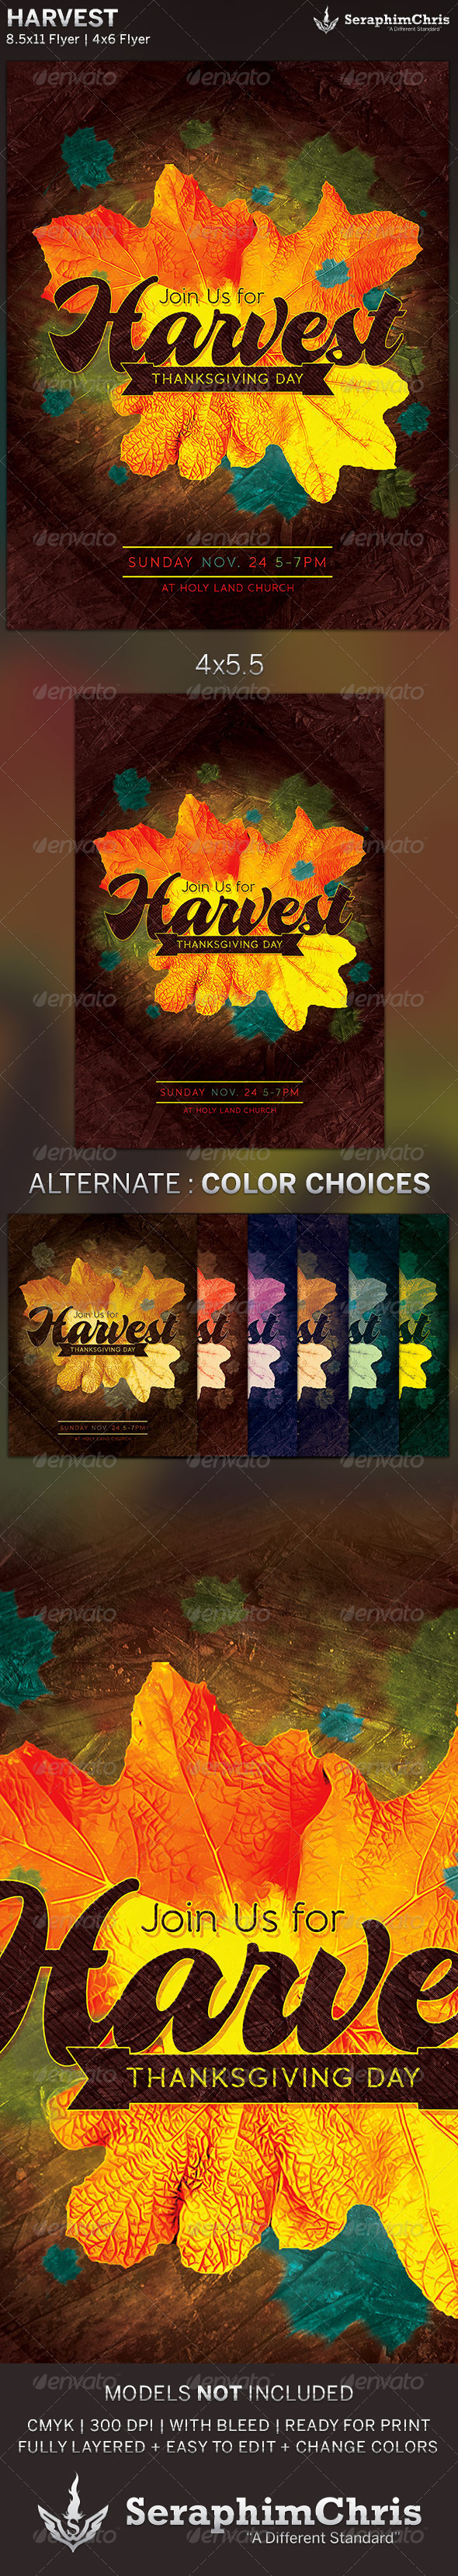 Harvest Thanksgiving: Church Flyer Template - Church Flyers